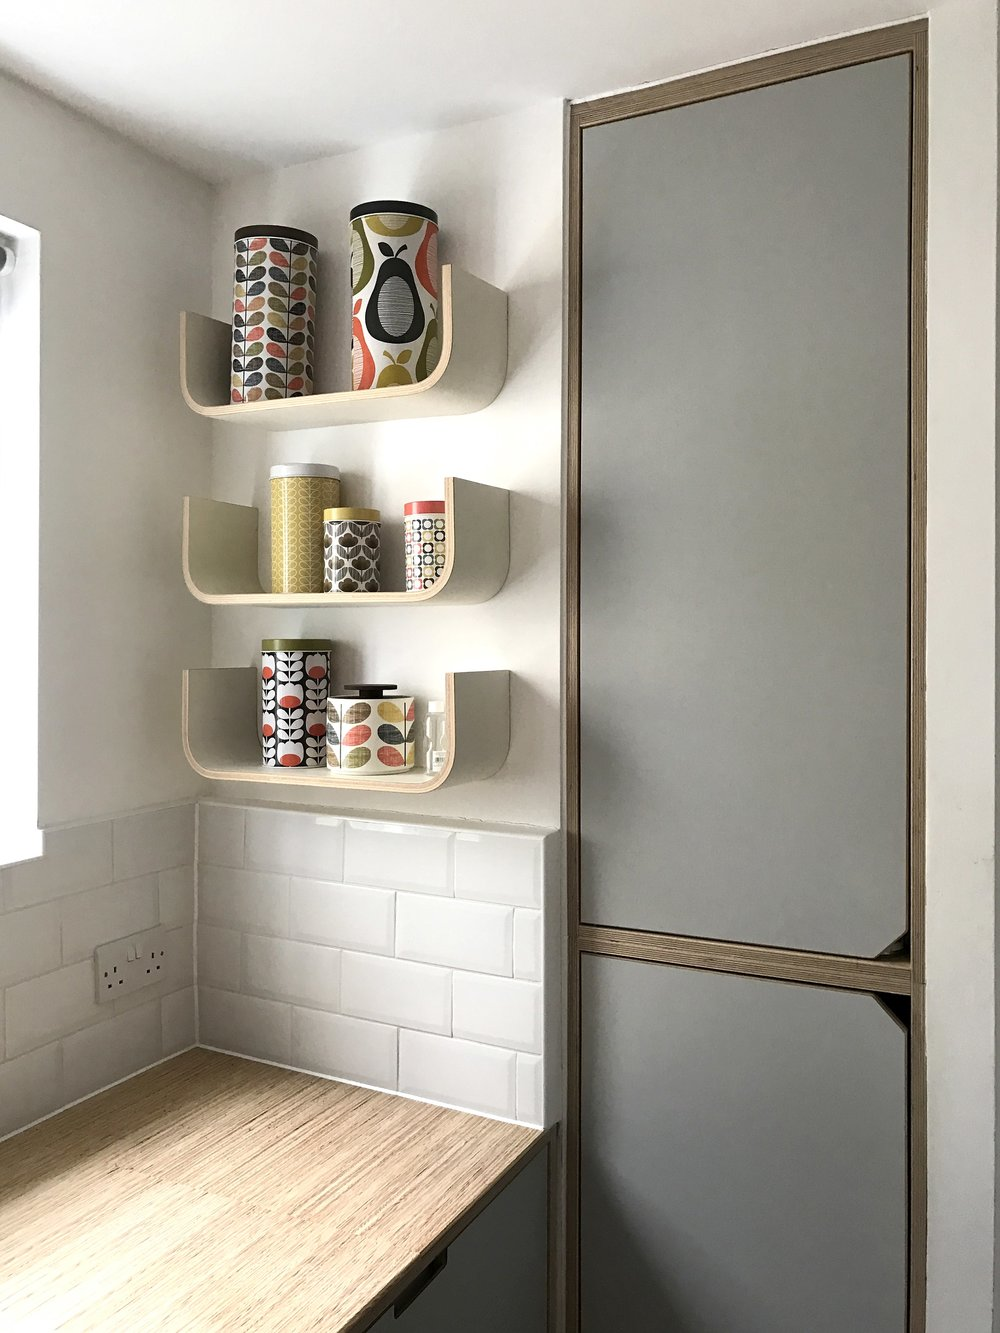 Bespoke painted U shelves create more storage space.